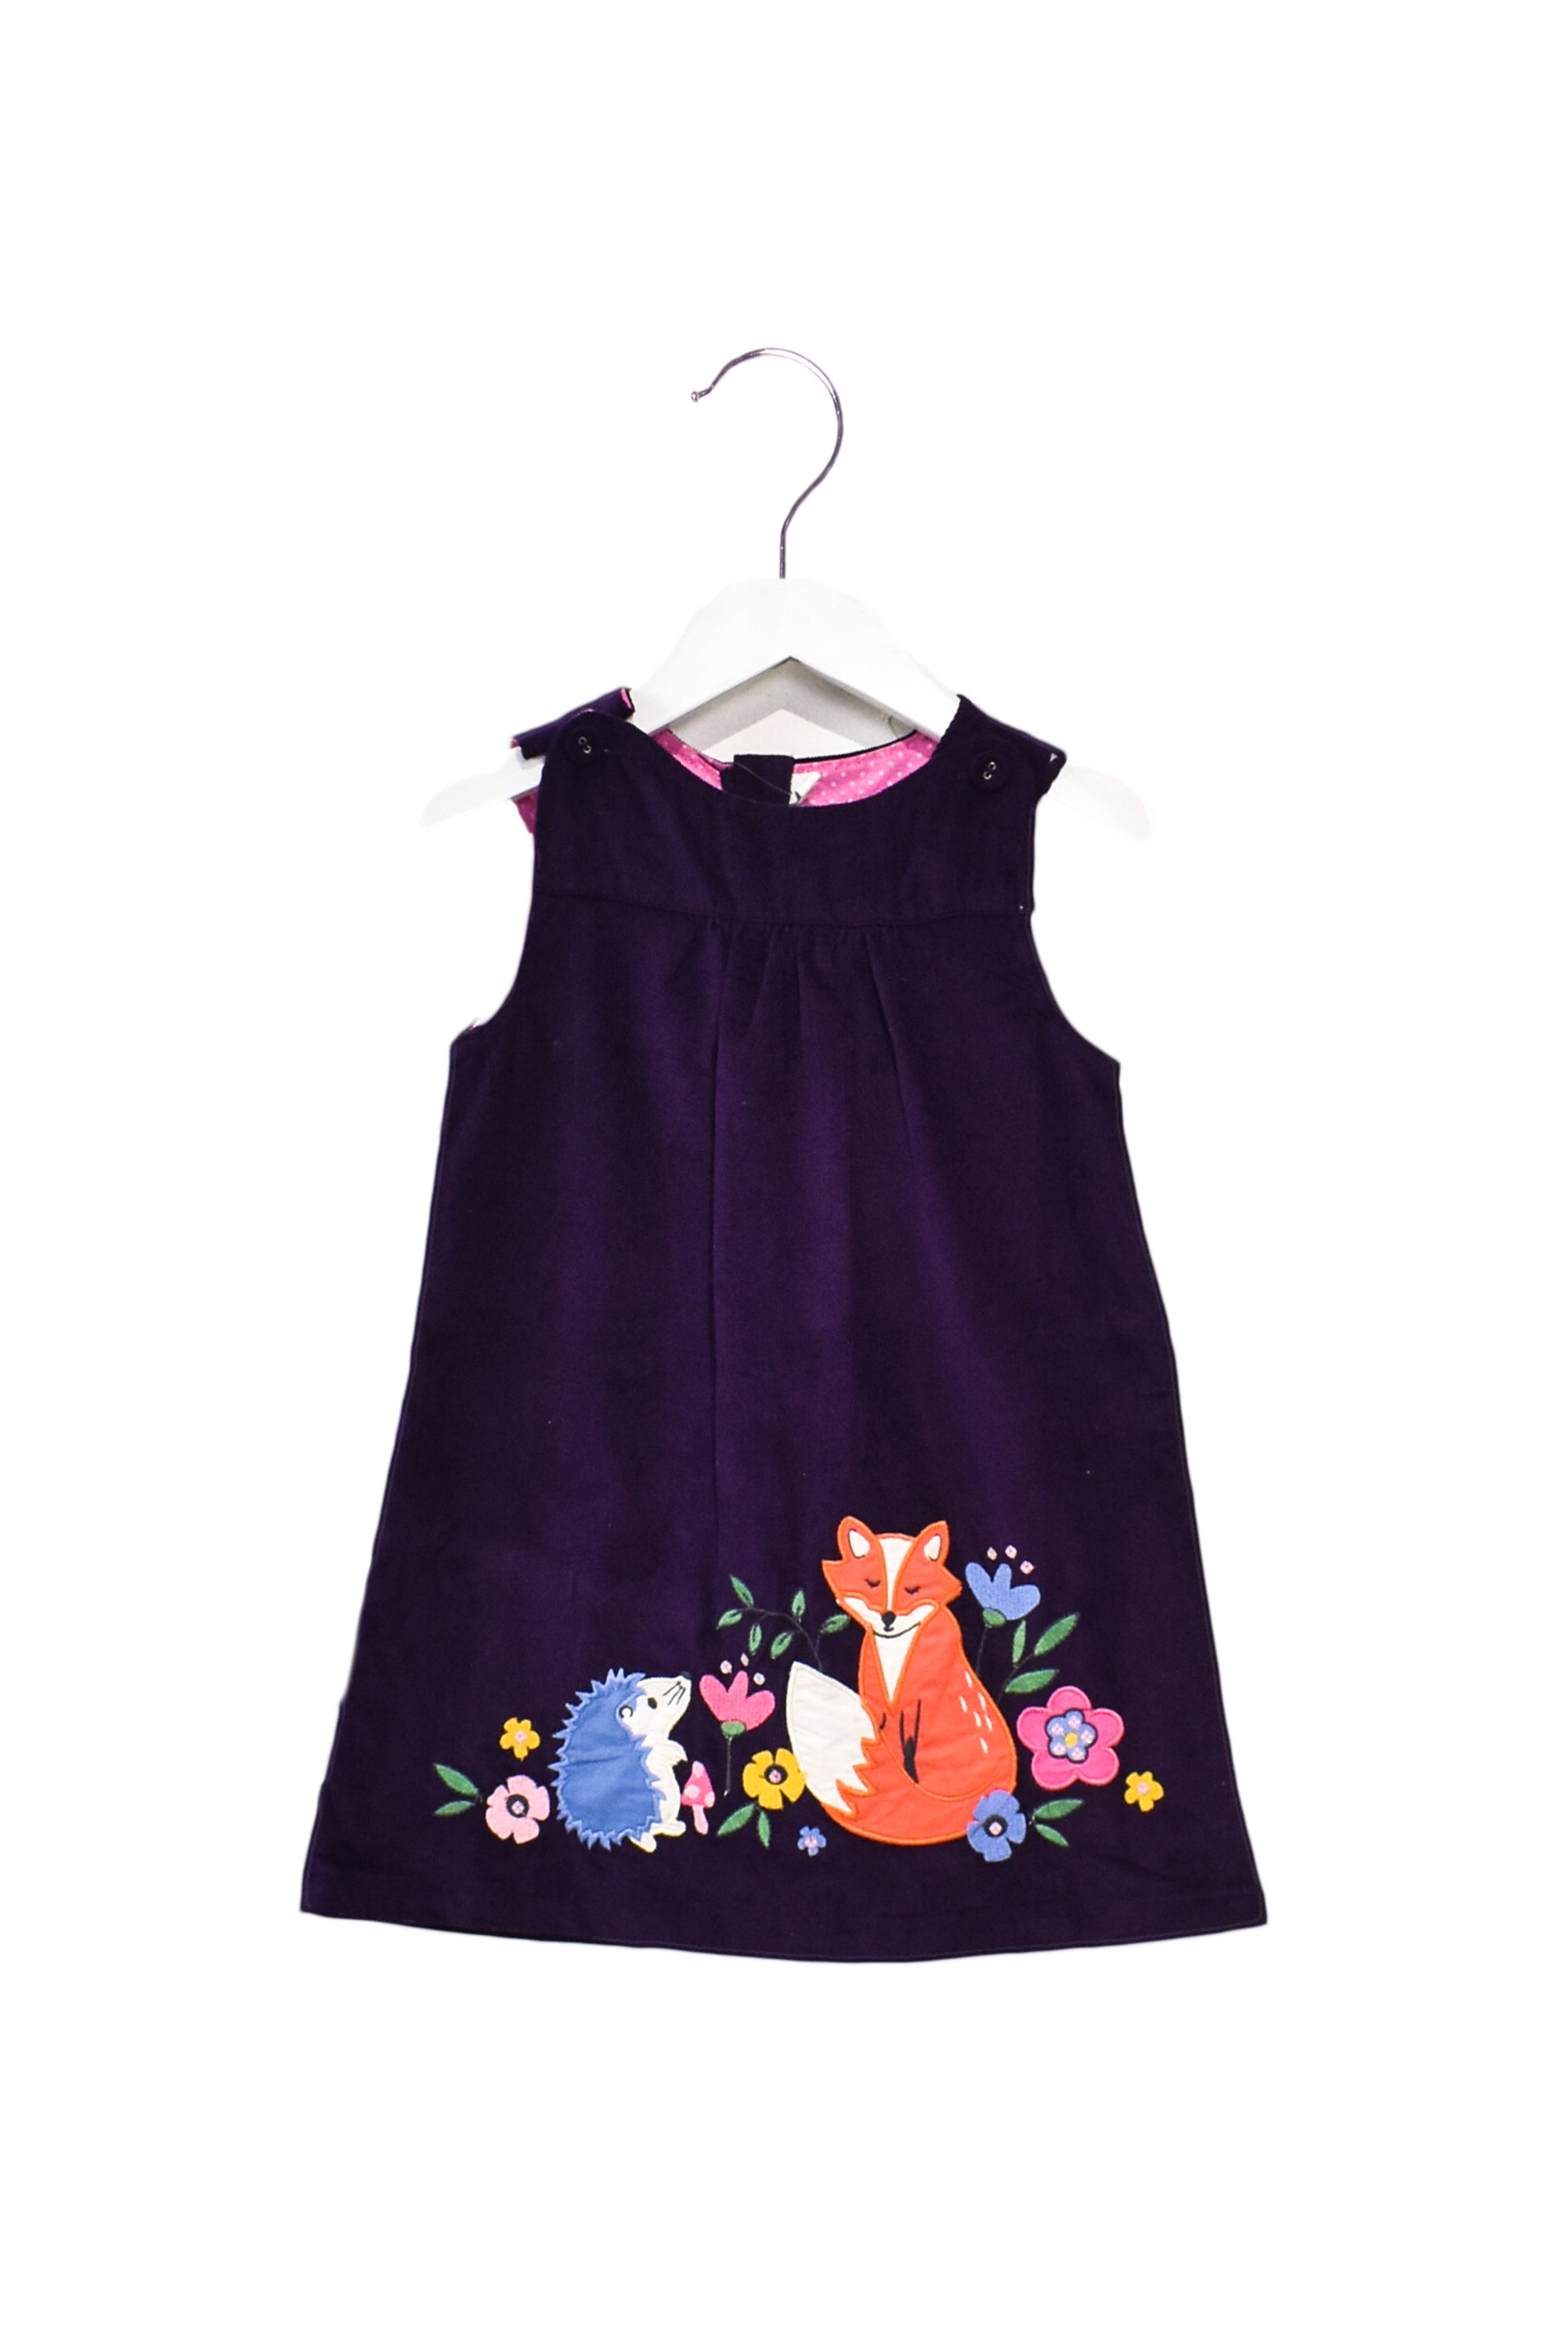 10028208 Jojo Maman Bebe Kids~Dress 2-3T at Retykle